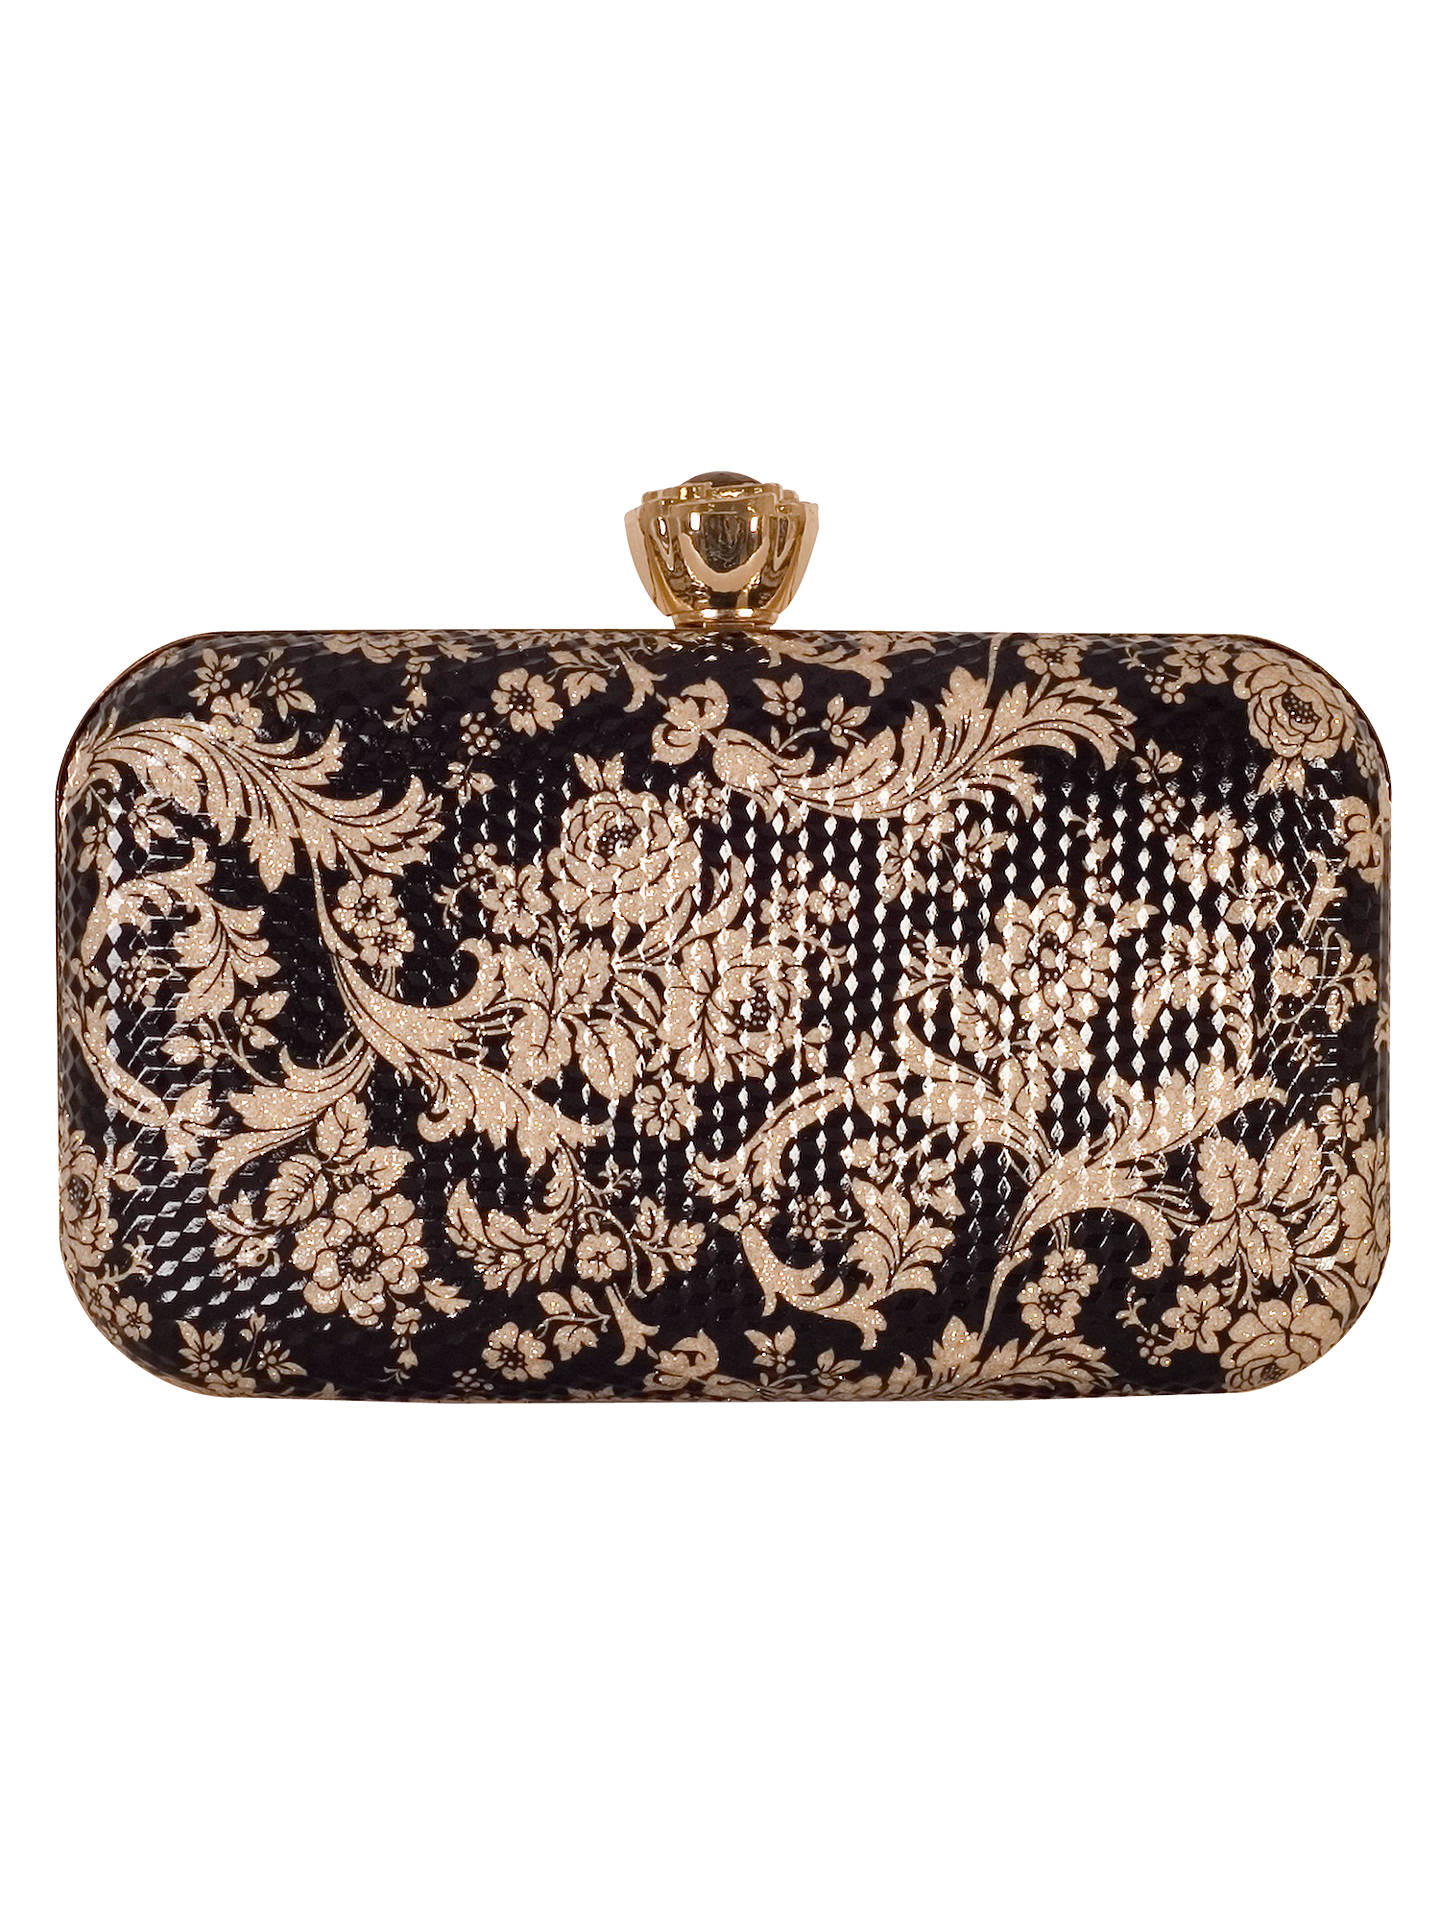 exquisite style great deals 2017 in stock Chesca Floral Clutch Bag, Black/Gold